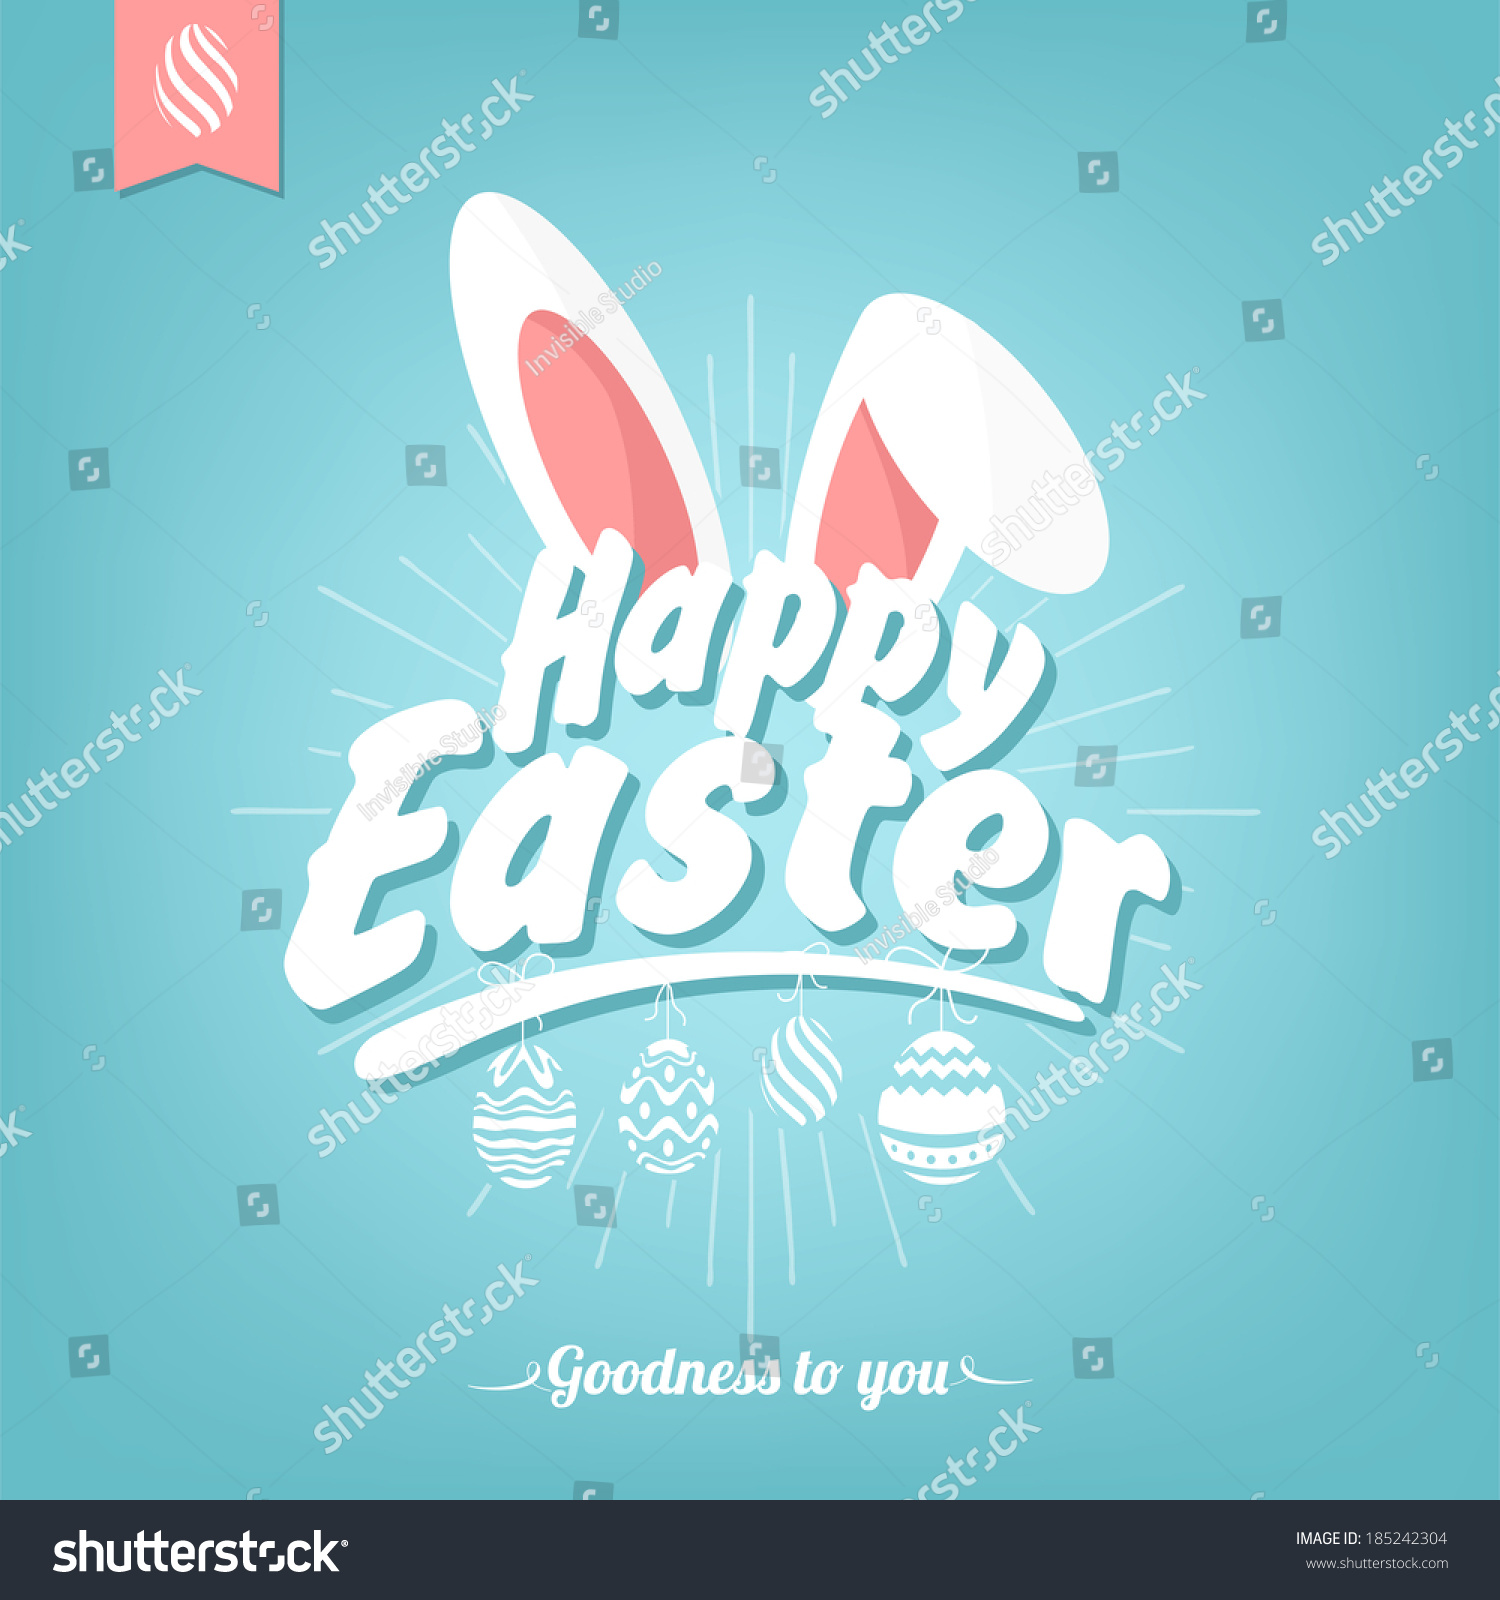 Happy Easter Typographical Background Bunny Stock Vector ...